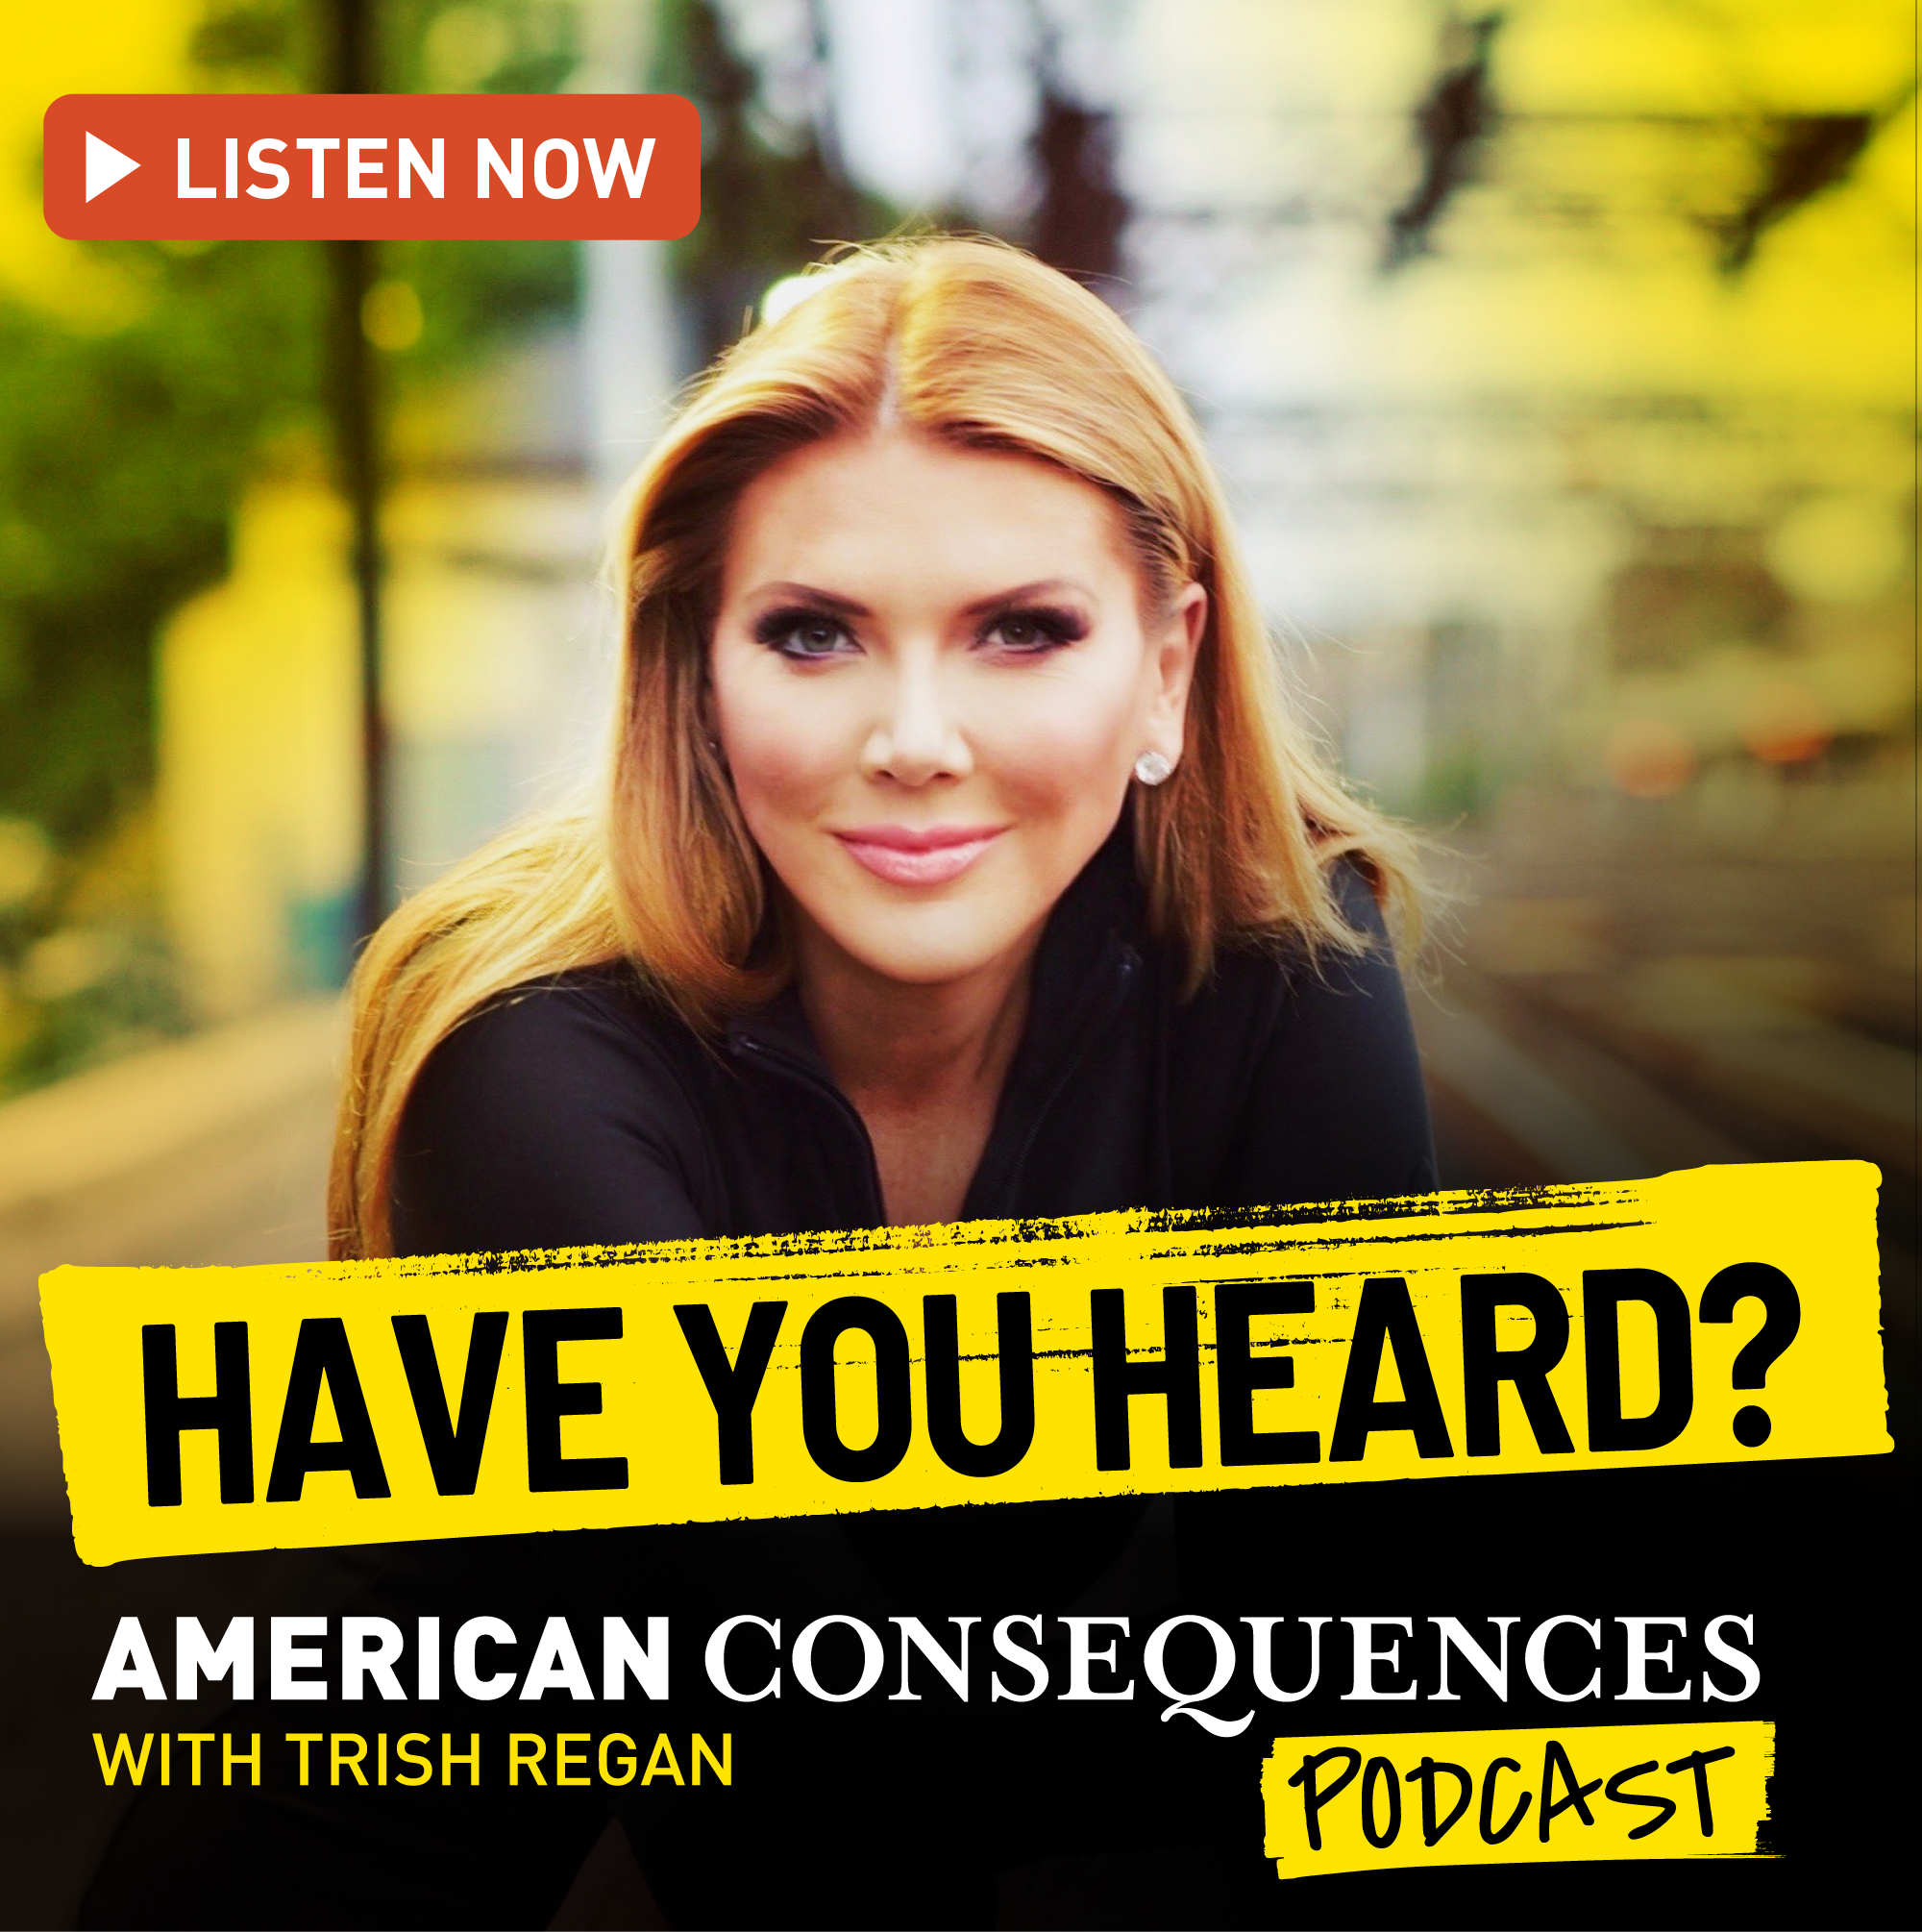 American Consequences with Trish Regan Podcast